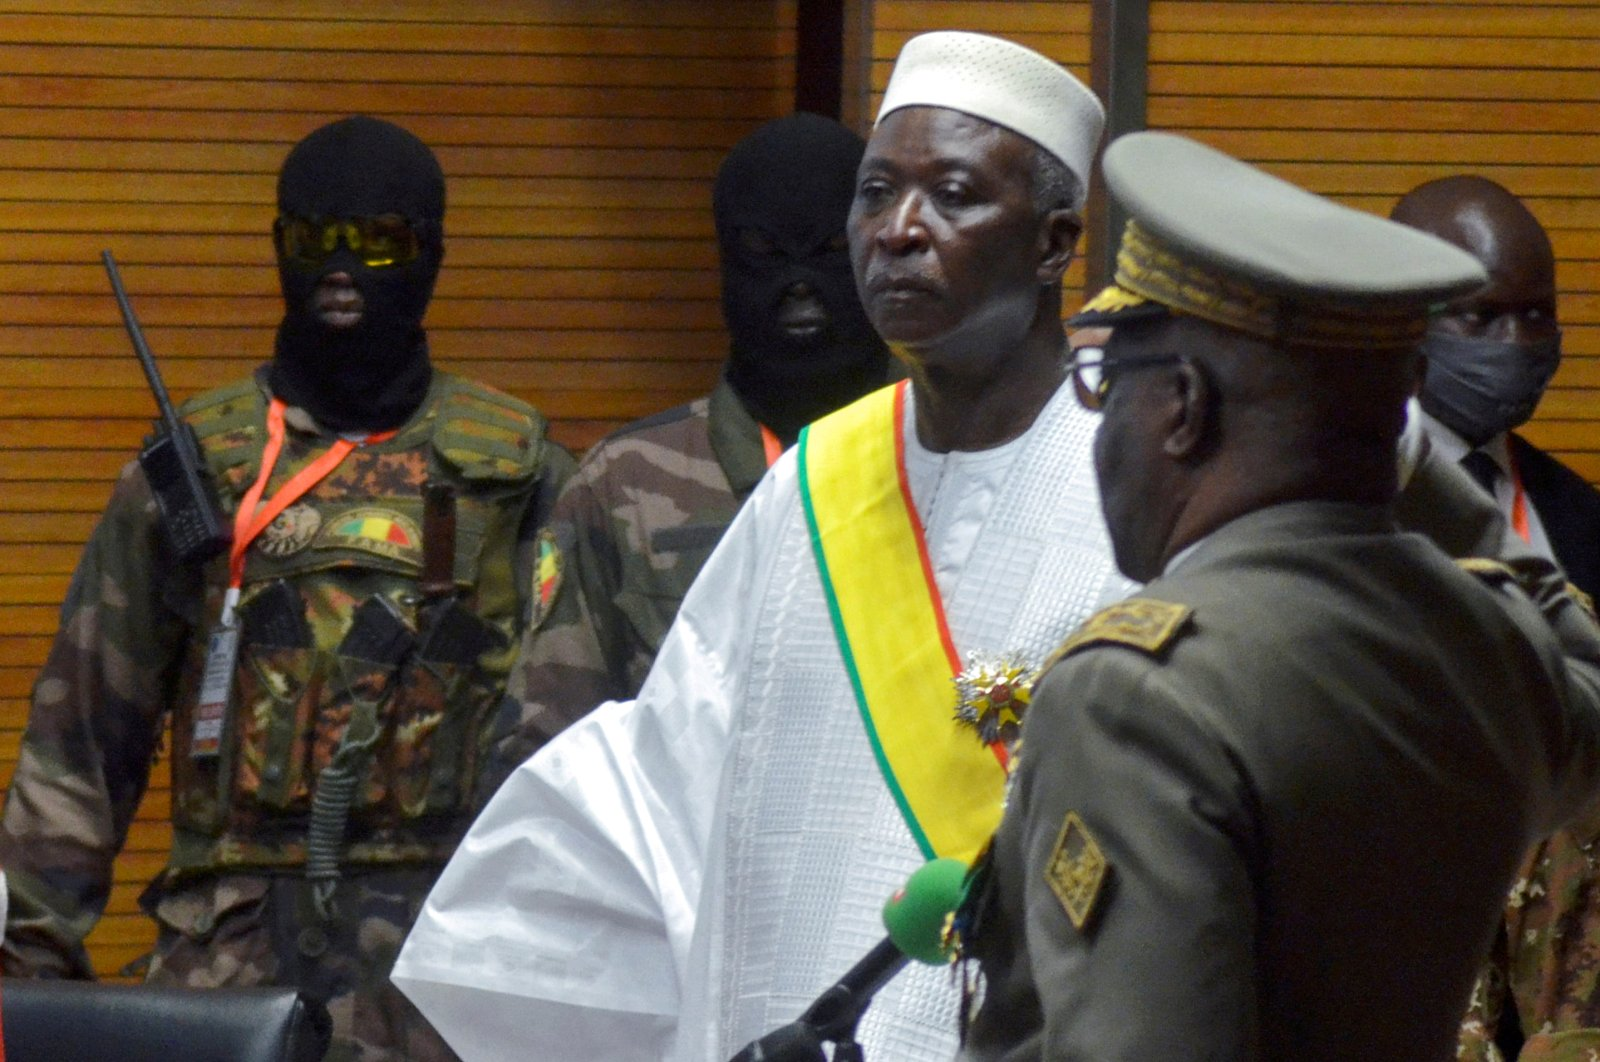 The new interim president of Mali, Bah N'Daw, is sworn in during the inauguration ceremony in Bamako, Mali, Sept. 25, 2020. (Reuters Photo)